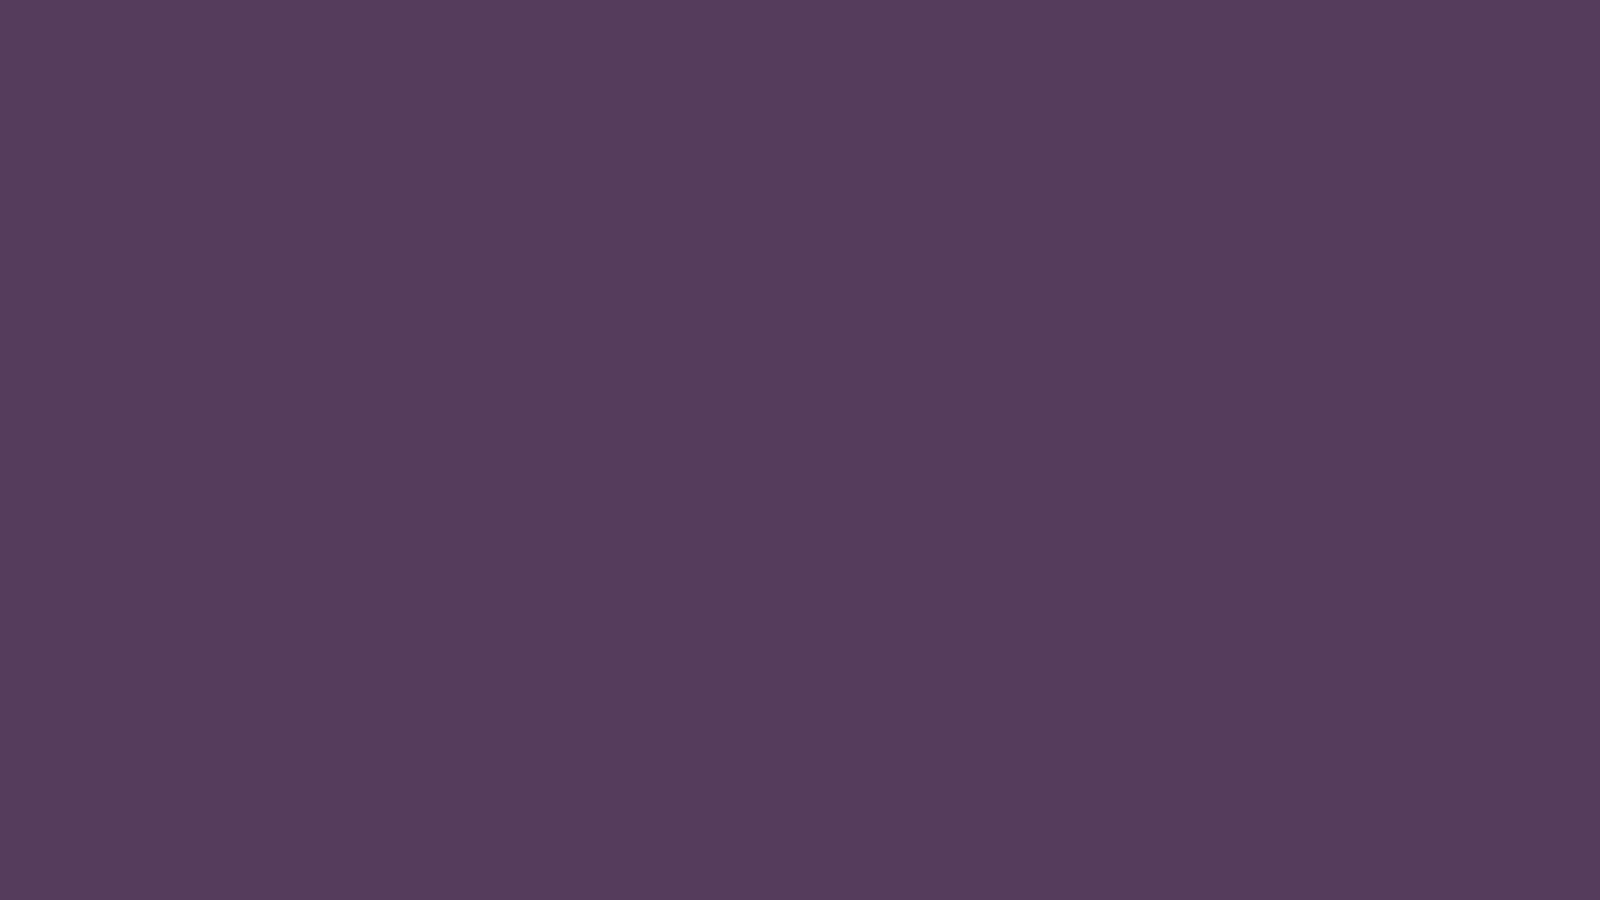 1600x900 English Violet Solid Color Background